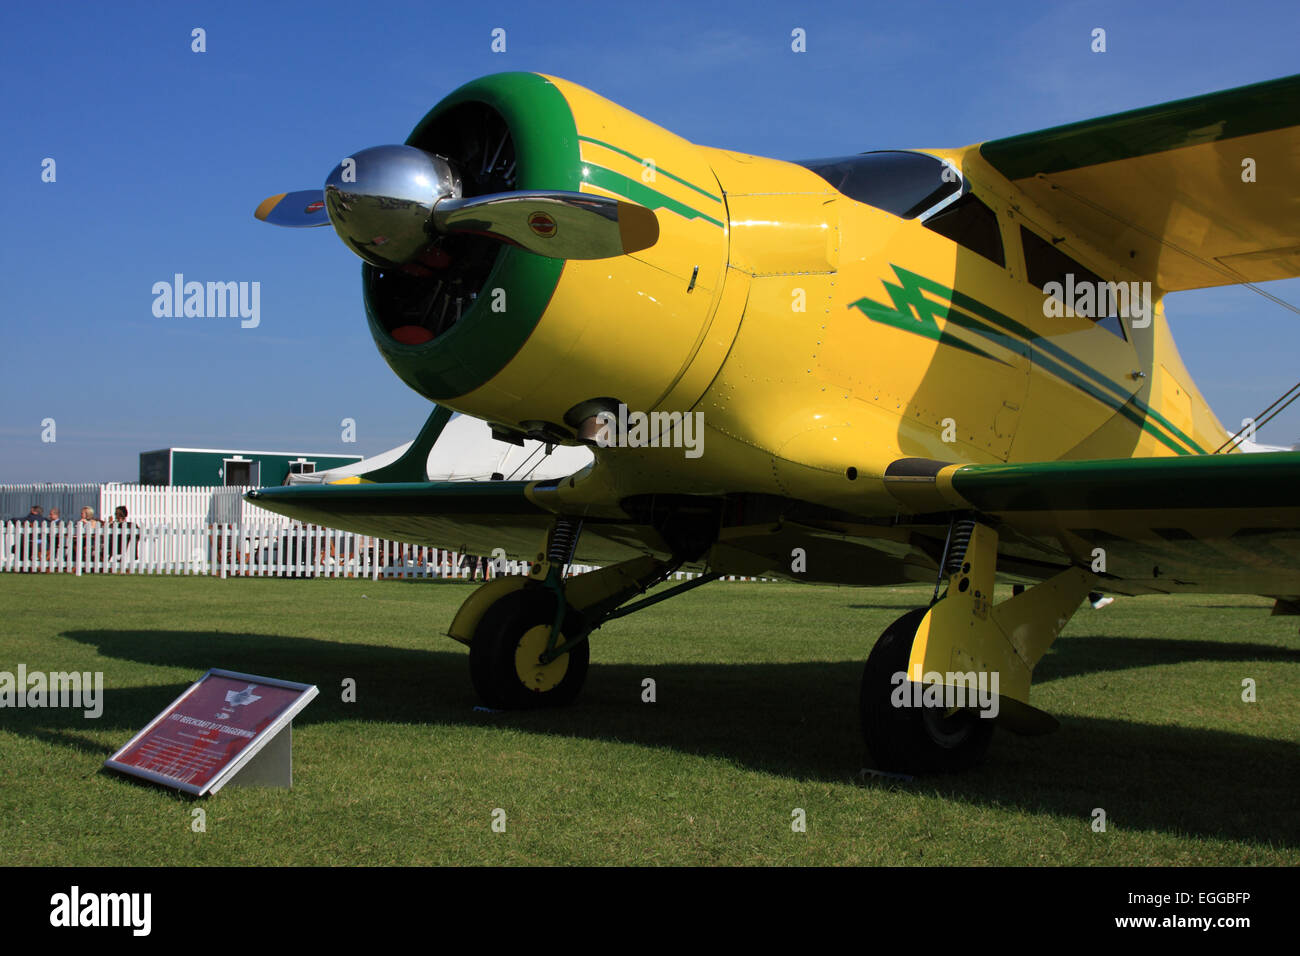 1937 Beechcraft D17 Staggerwing against a cloudless sky / Goodwood Revival / Goodwood / UK - Stock Image